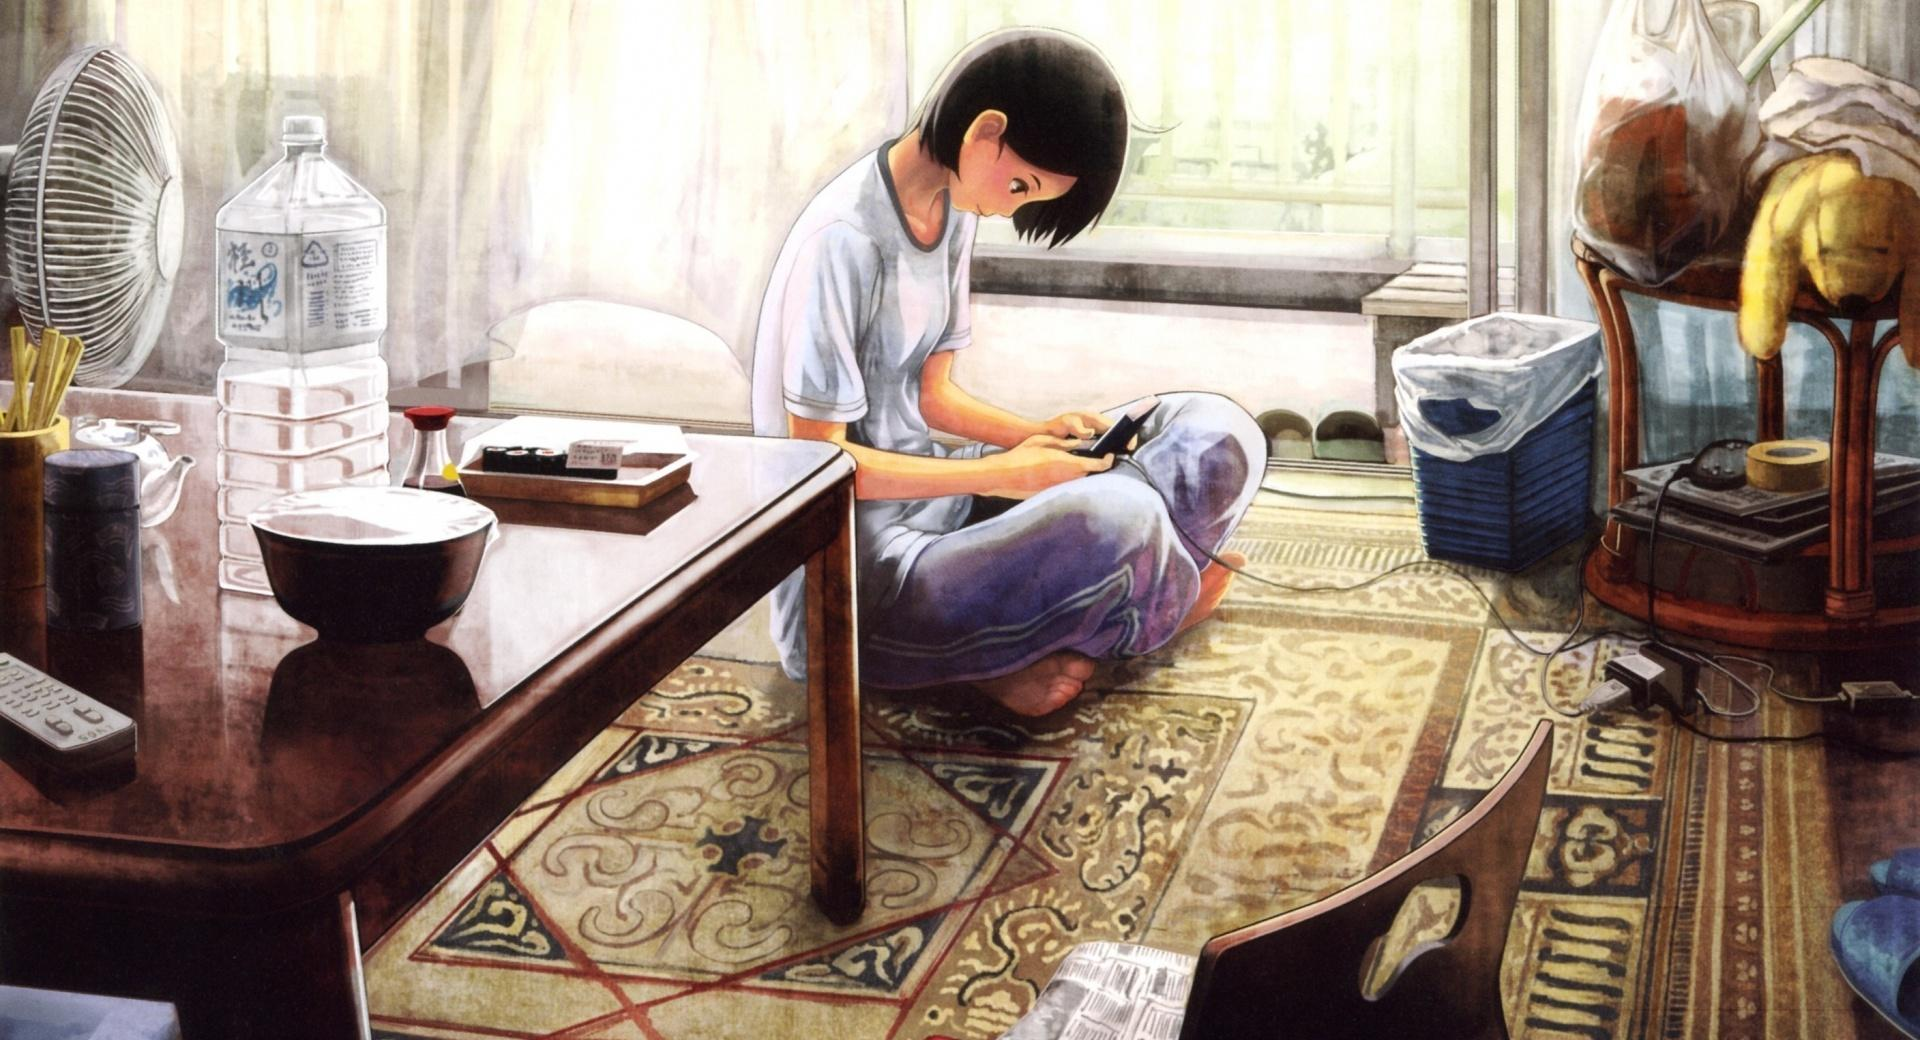 Girl Playing Video Games wallpapers HD quality